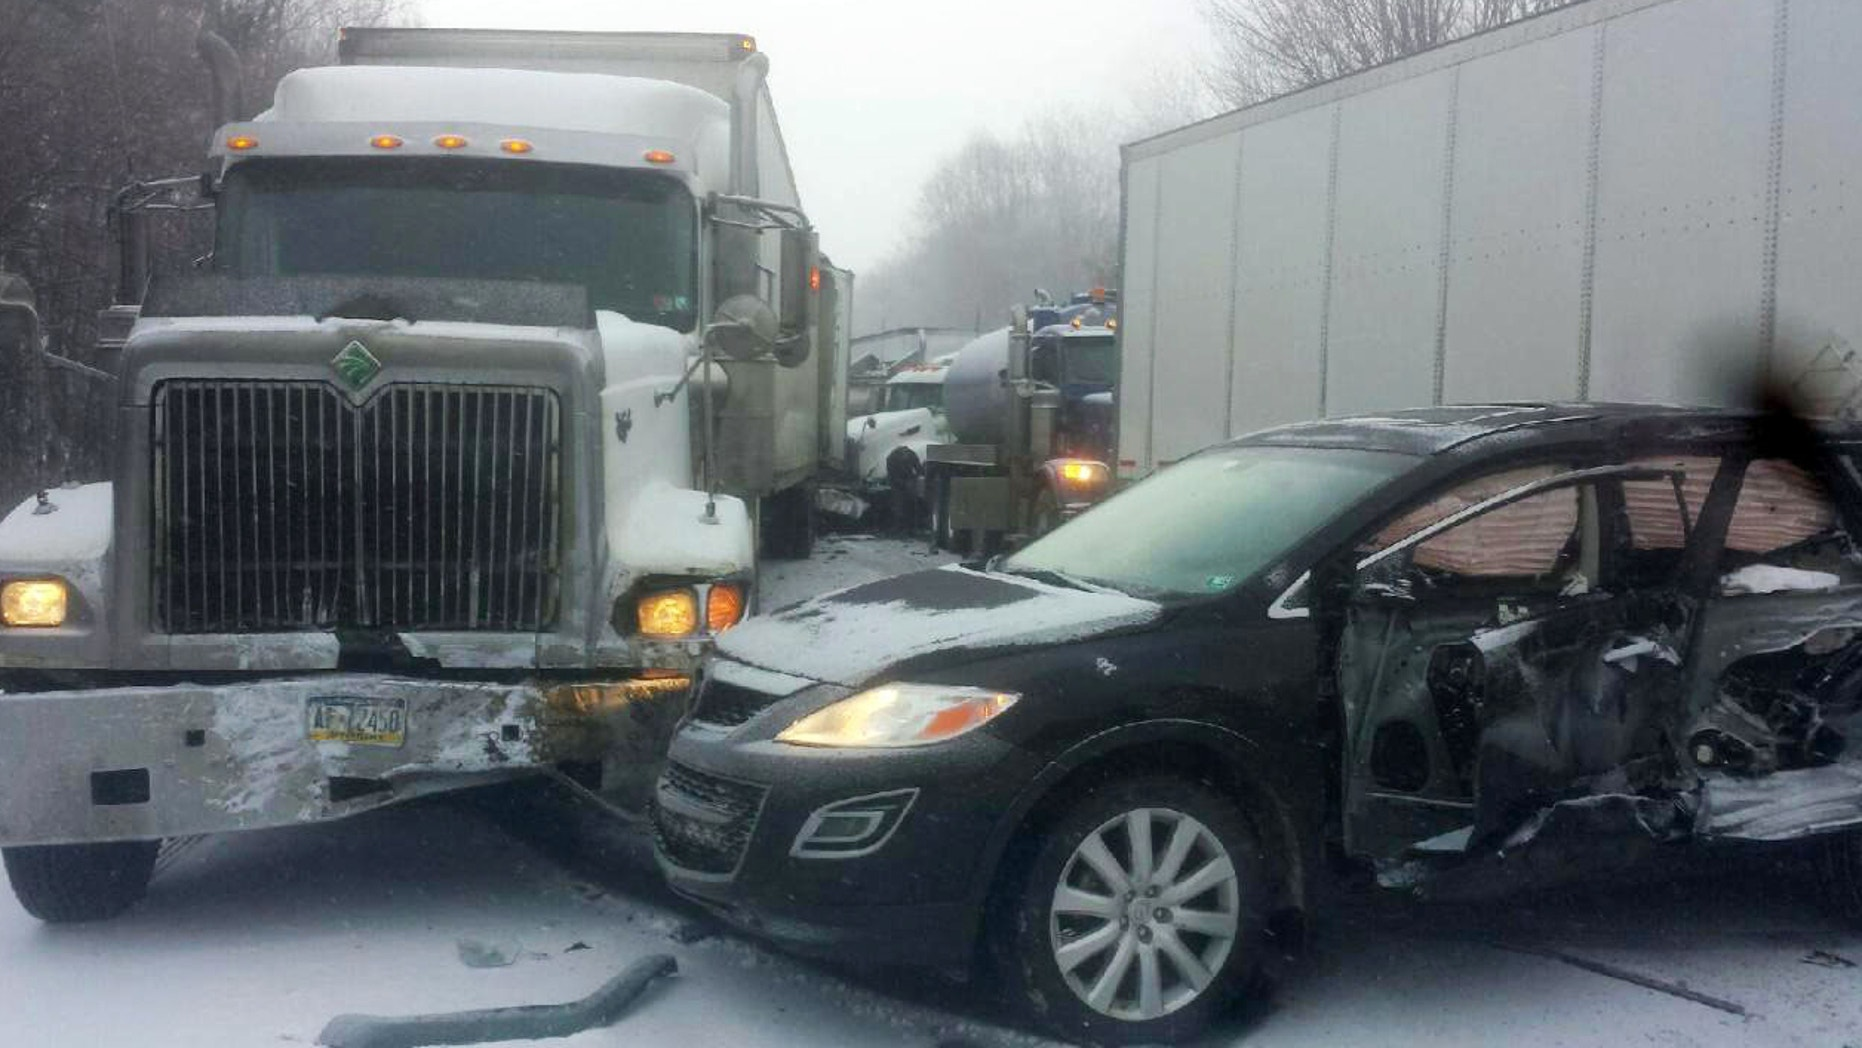 Jan. 7, 2015: In this photo provided by exploreClarion.com/Bauer Truck Repair, vehicles remain at the scene of a fatal 18-vehicle pileup that occurred in whiteout conditions.